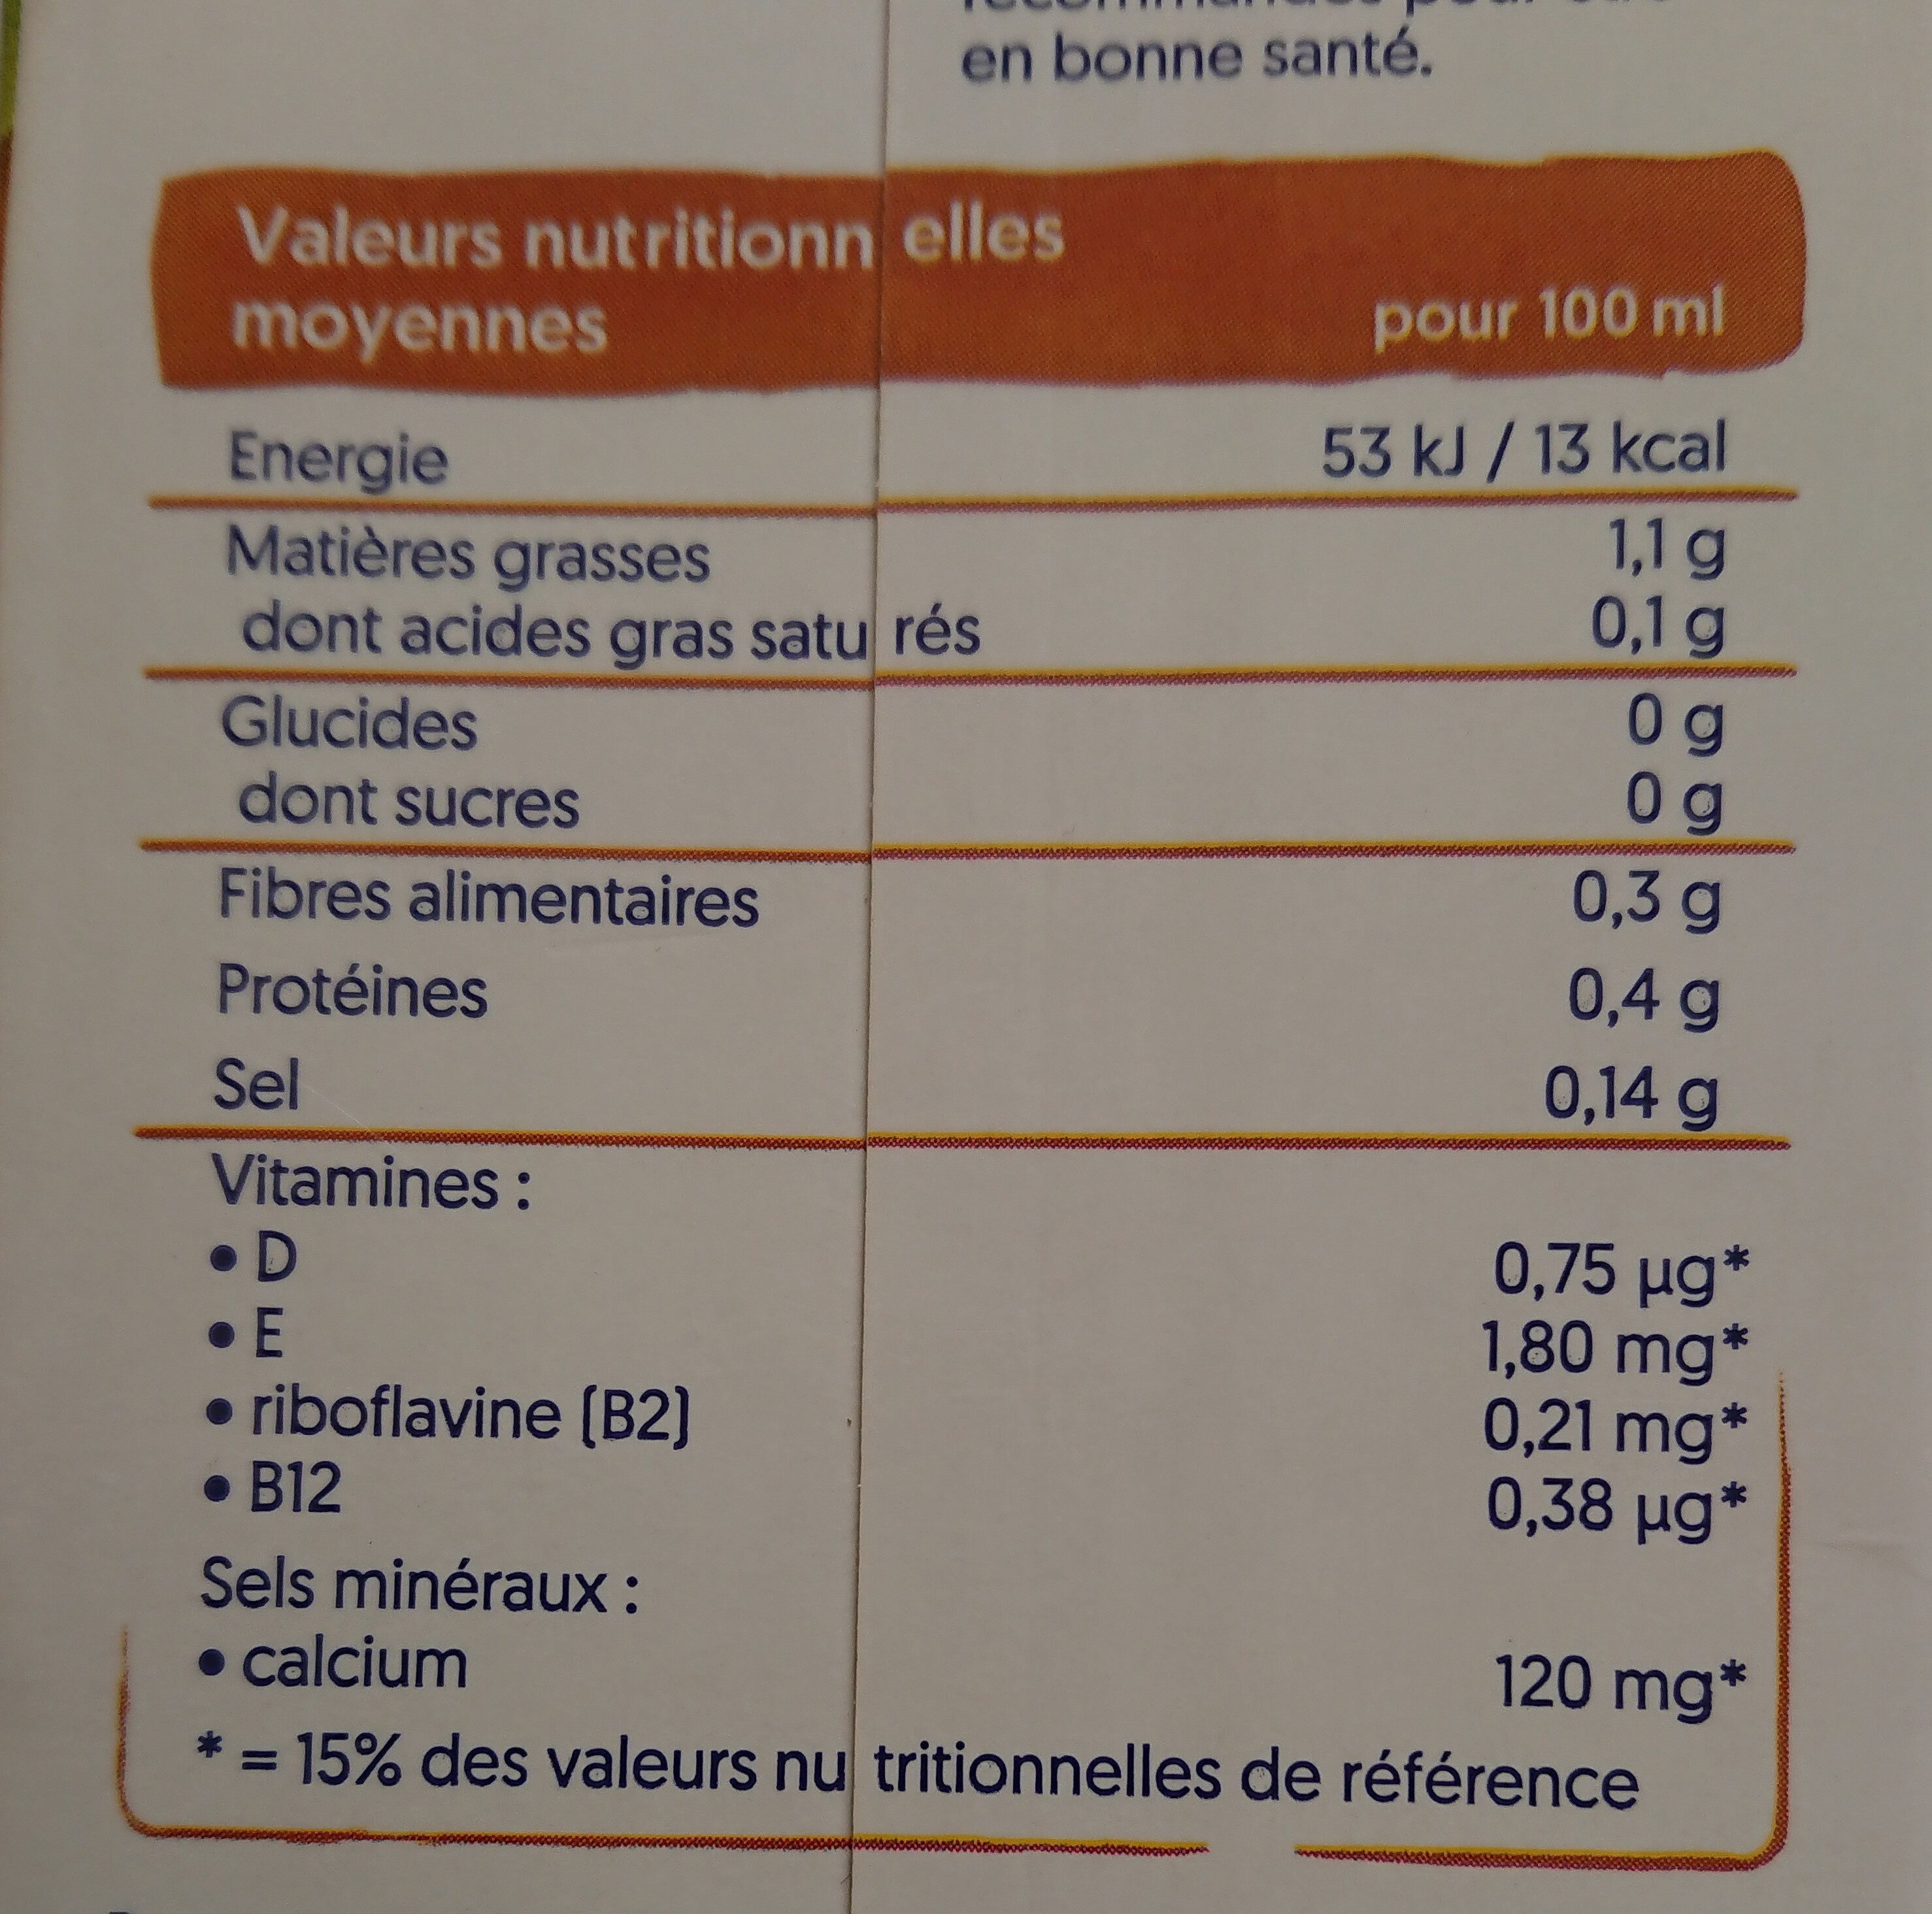 Roasted Almond No Sugars - Informations nutritionnelles - fr